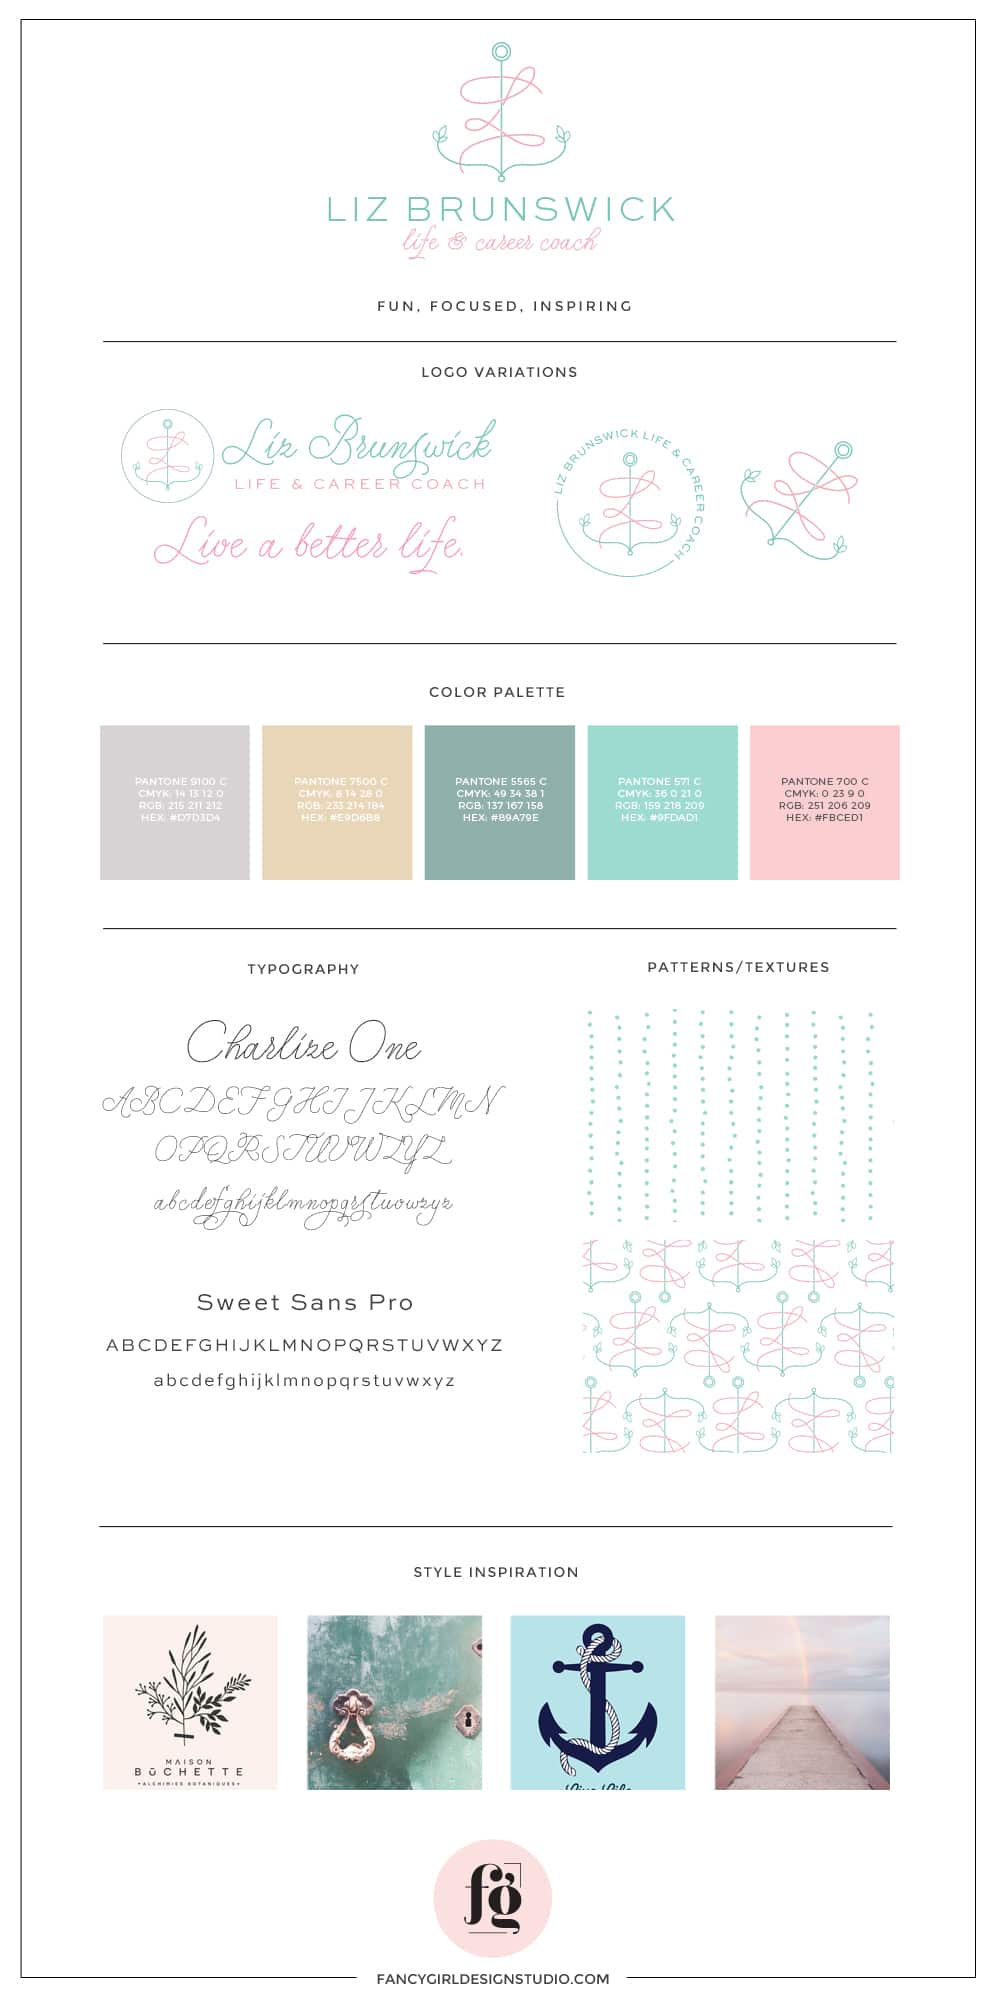 brand guide for Liz Brunswick Coaching by Fancy Girl Designs